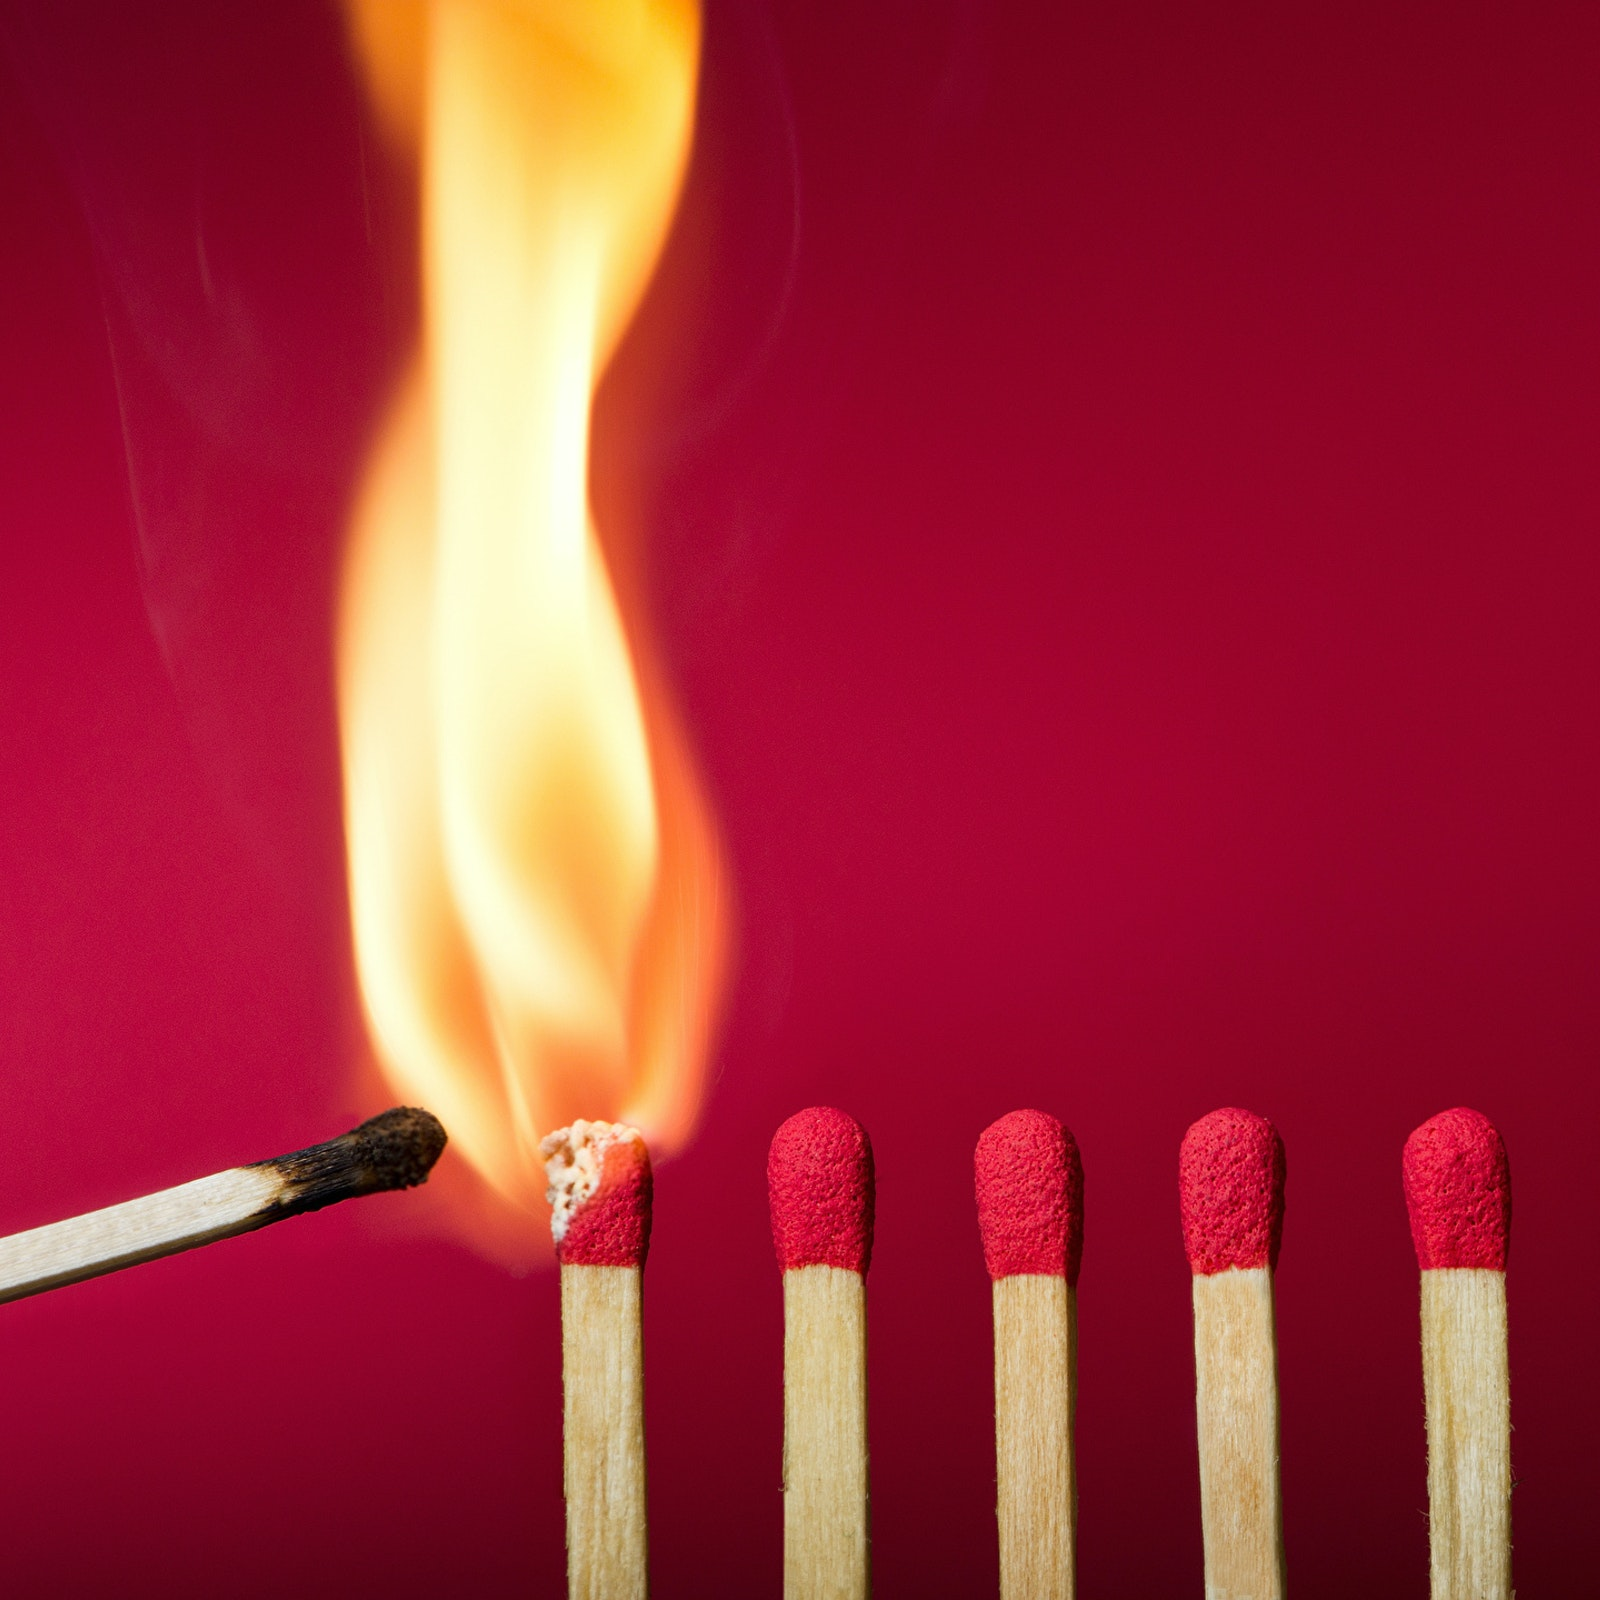 Fire Match Red background 530872 2560x1440